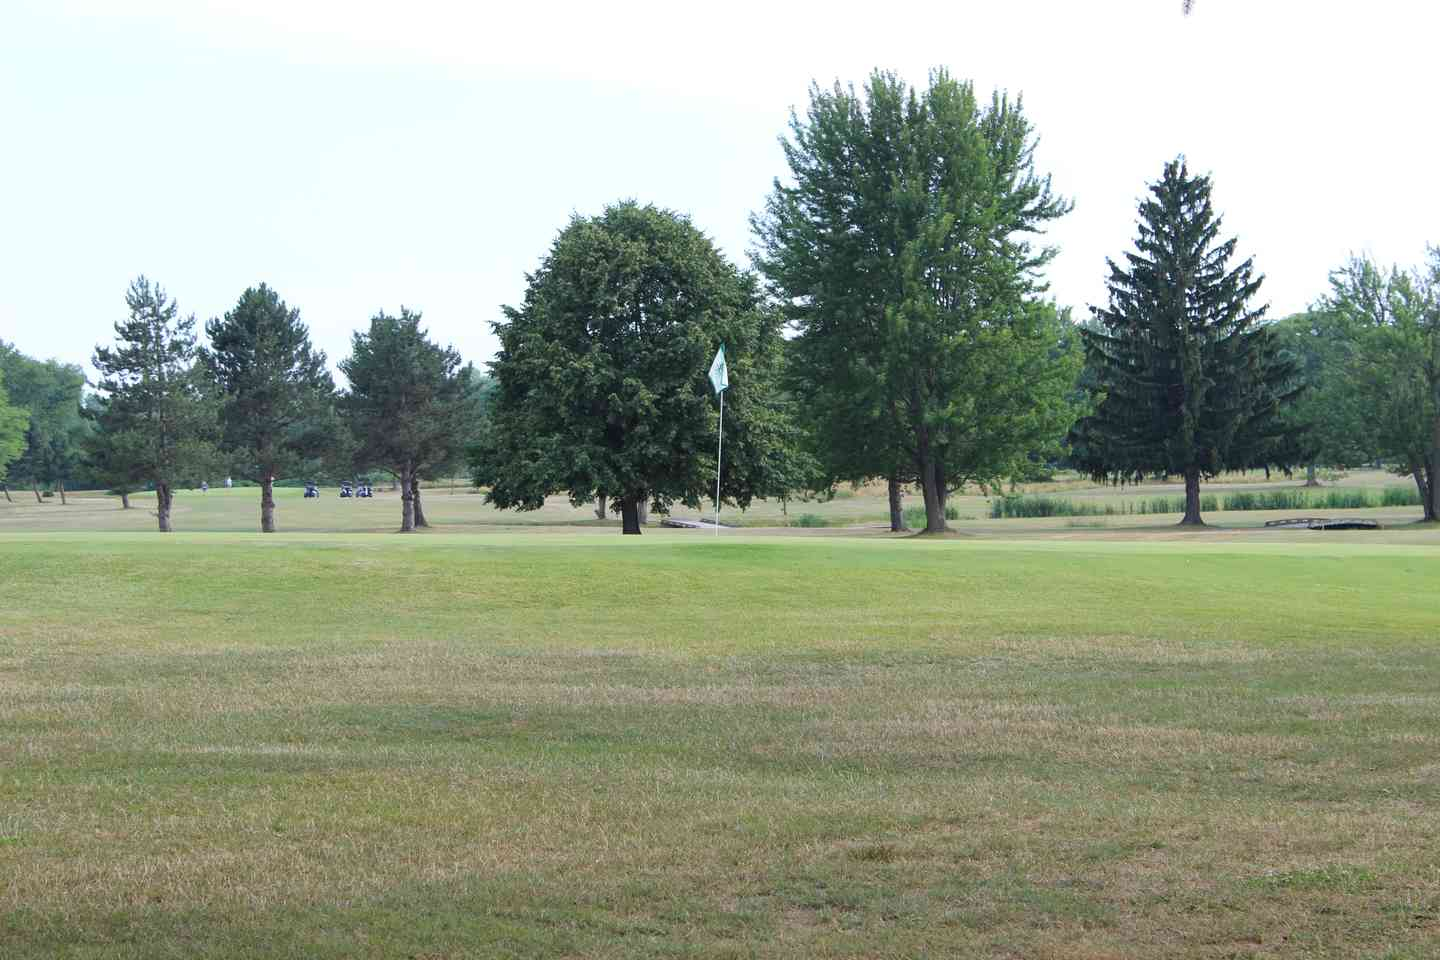 Pine trees on the edge of the golf course